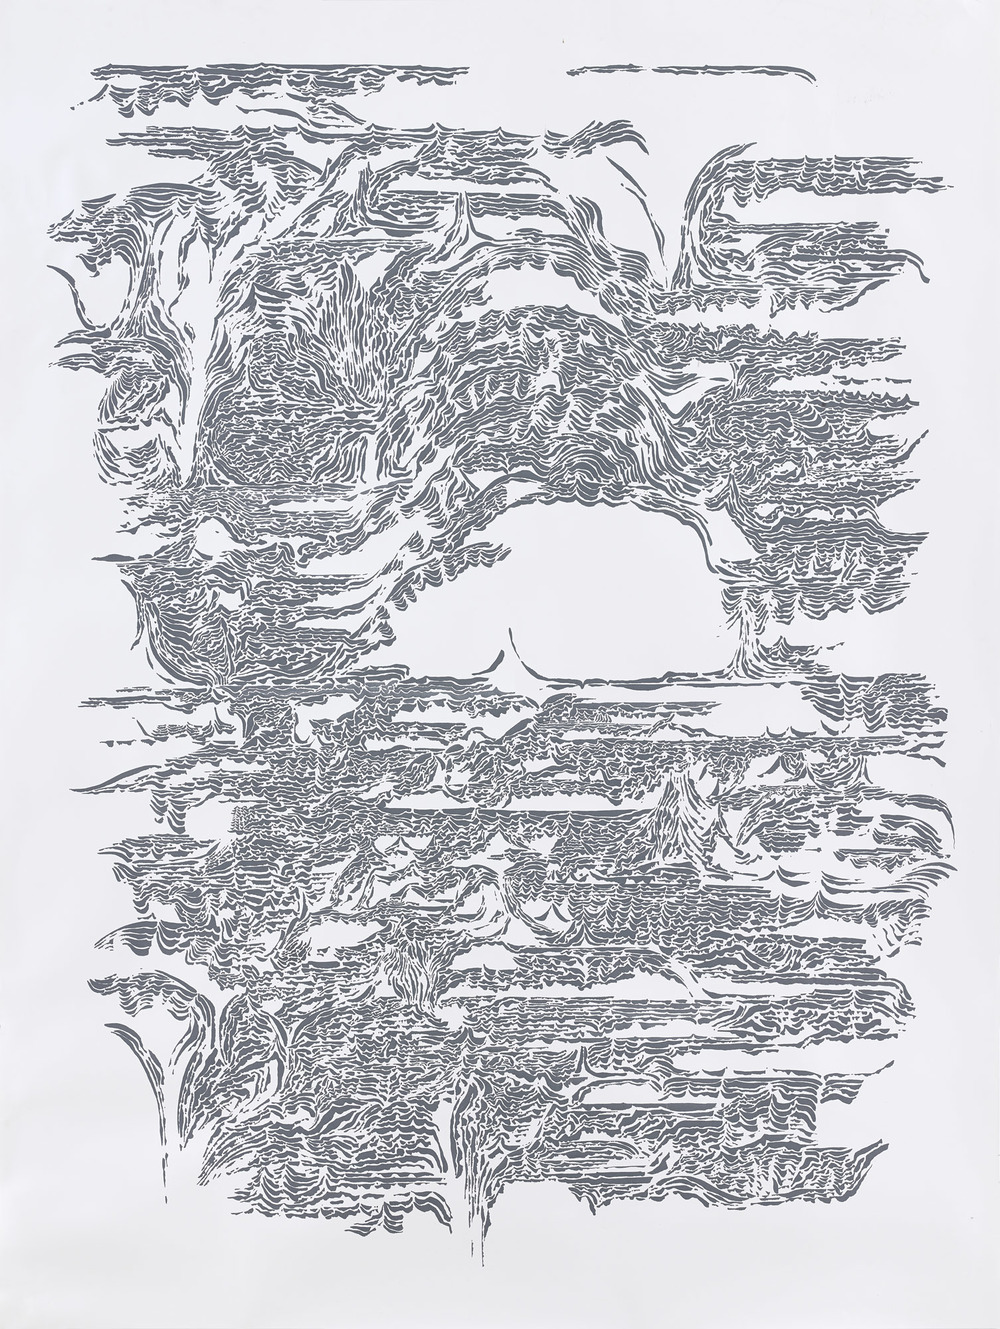 BK P7439 / untitled / ink on paper / 200x150cm / 2015